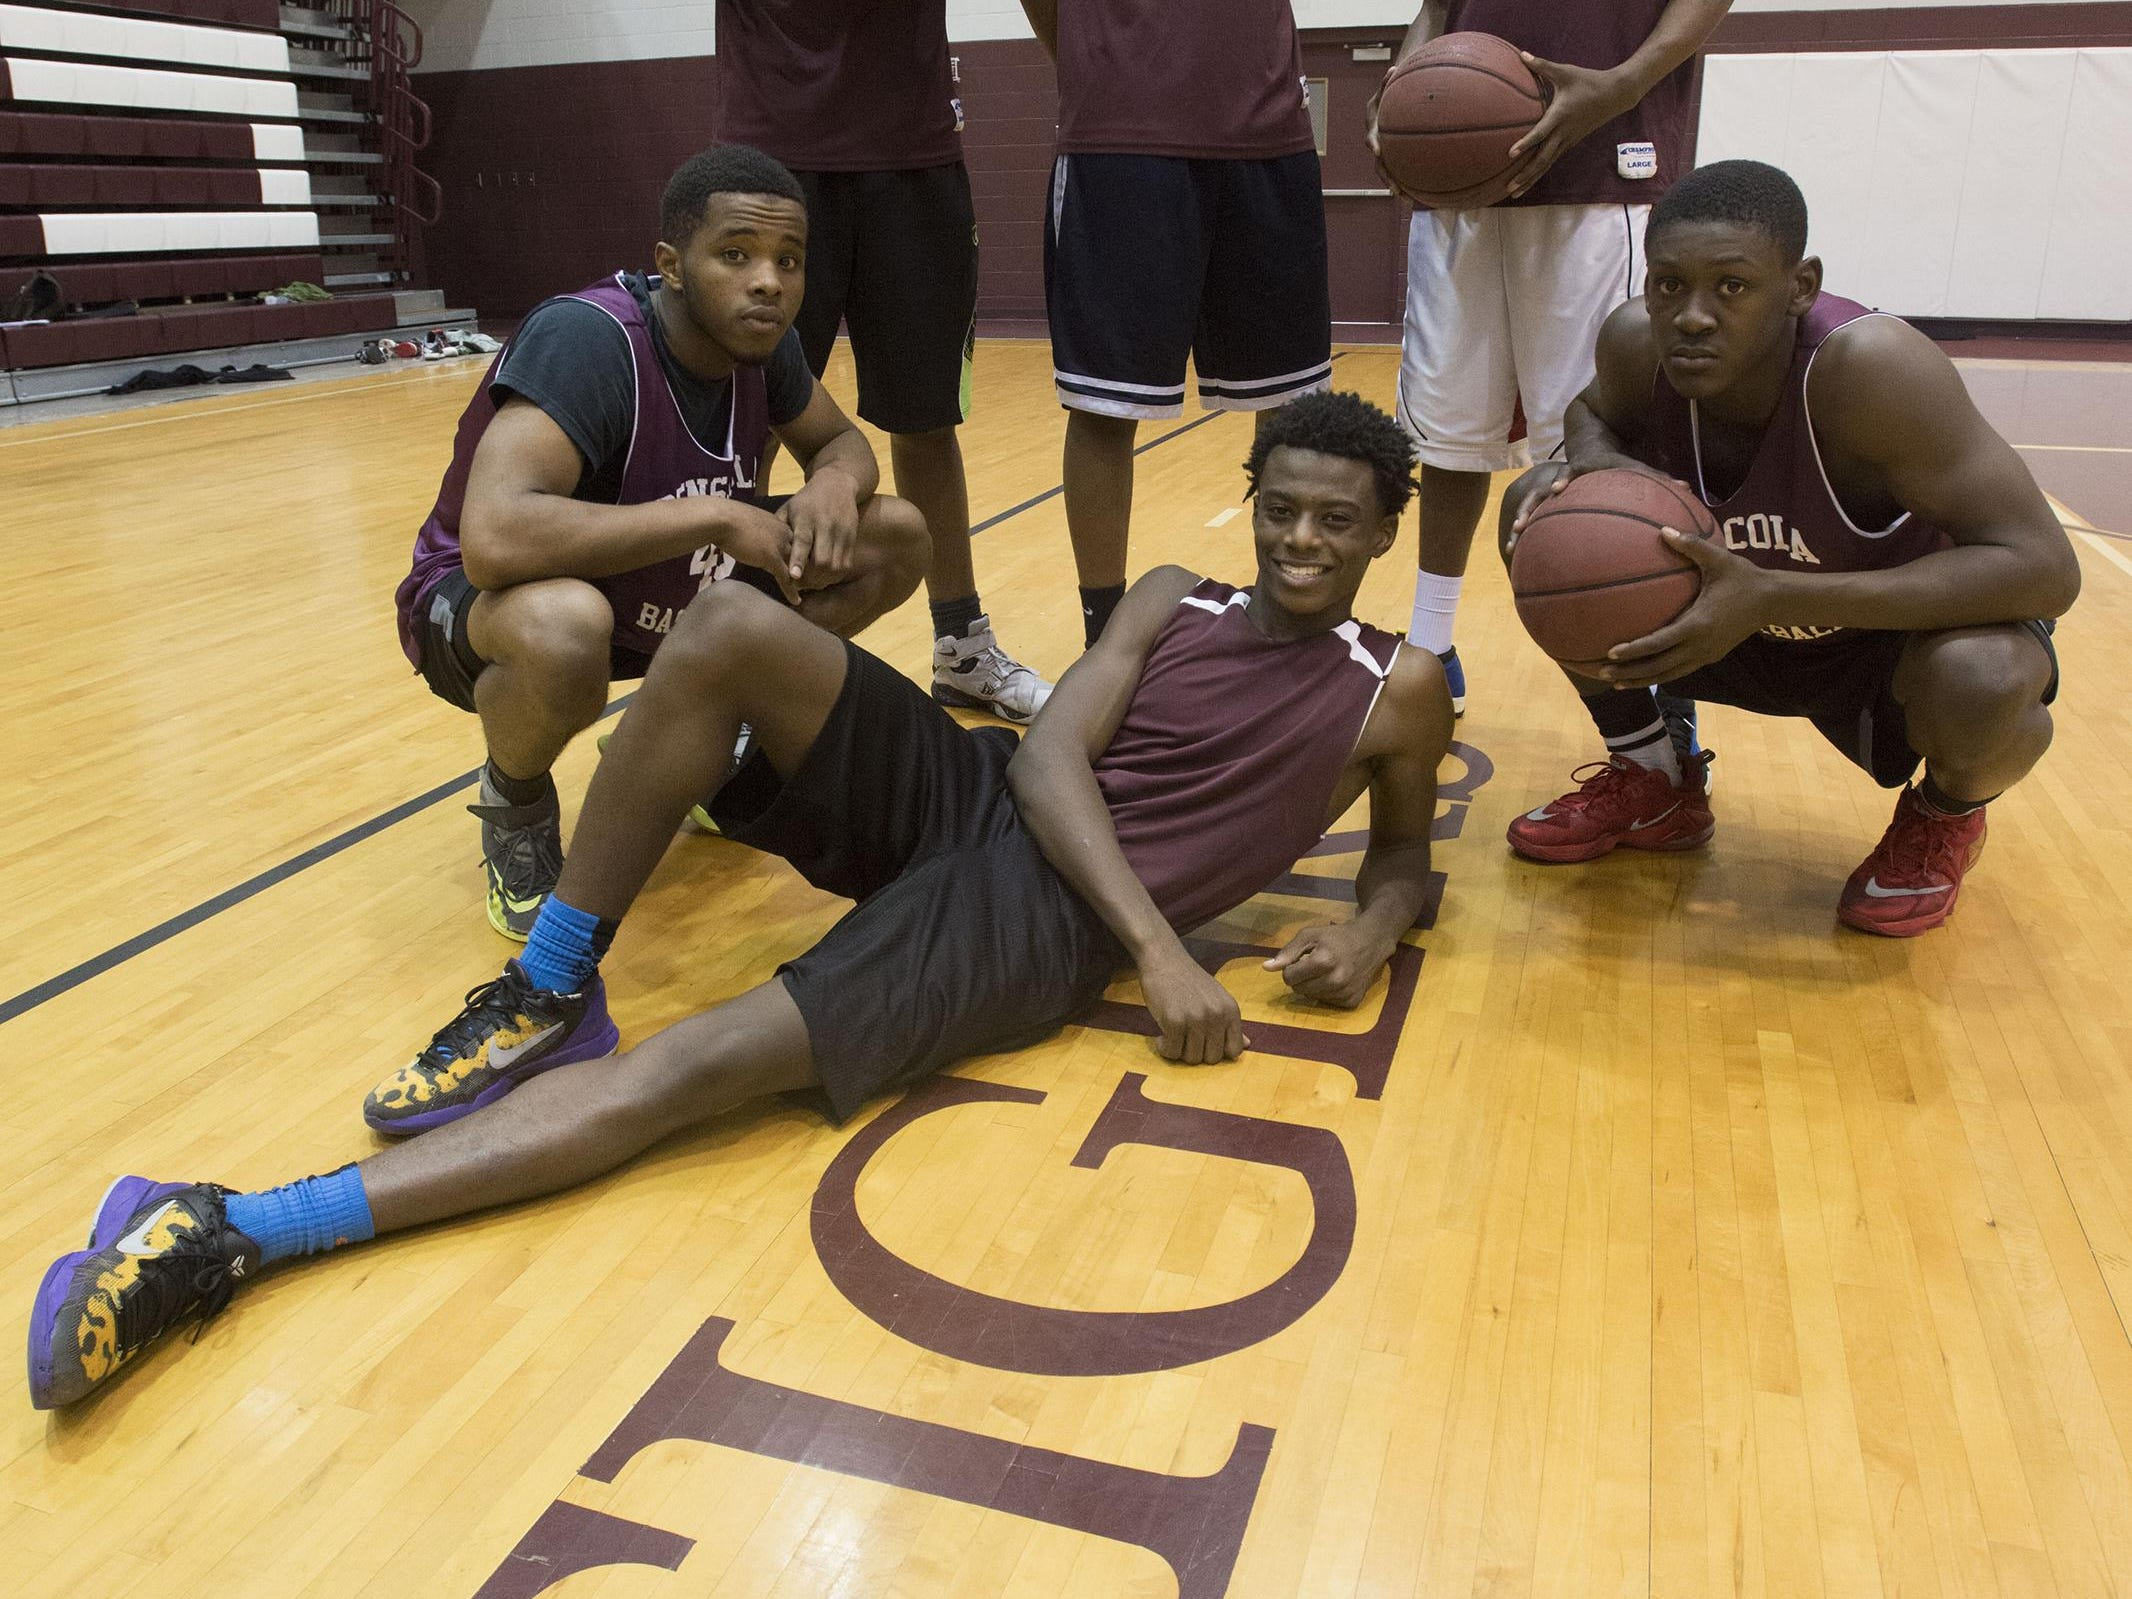 Left to Right: Devin Gadson, Javon Grimsley, Bryan Davonchae Shawndarius Cowart, Robert Reeves, and Zykereyan Jones, will be leading the Pensacola High School team to the semifinals in Lakeland this weekend.